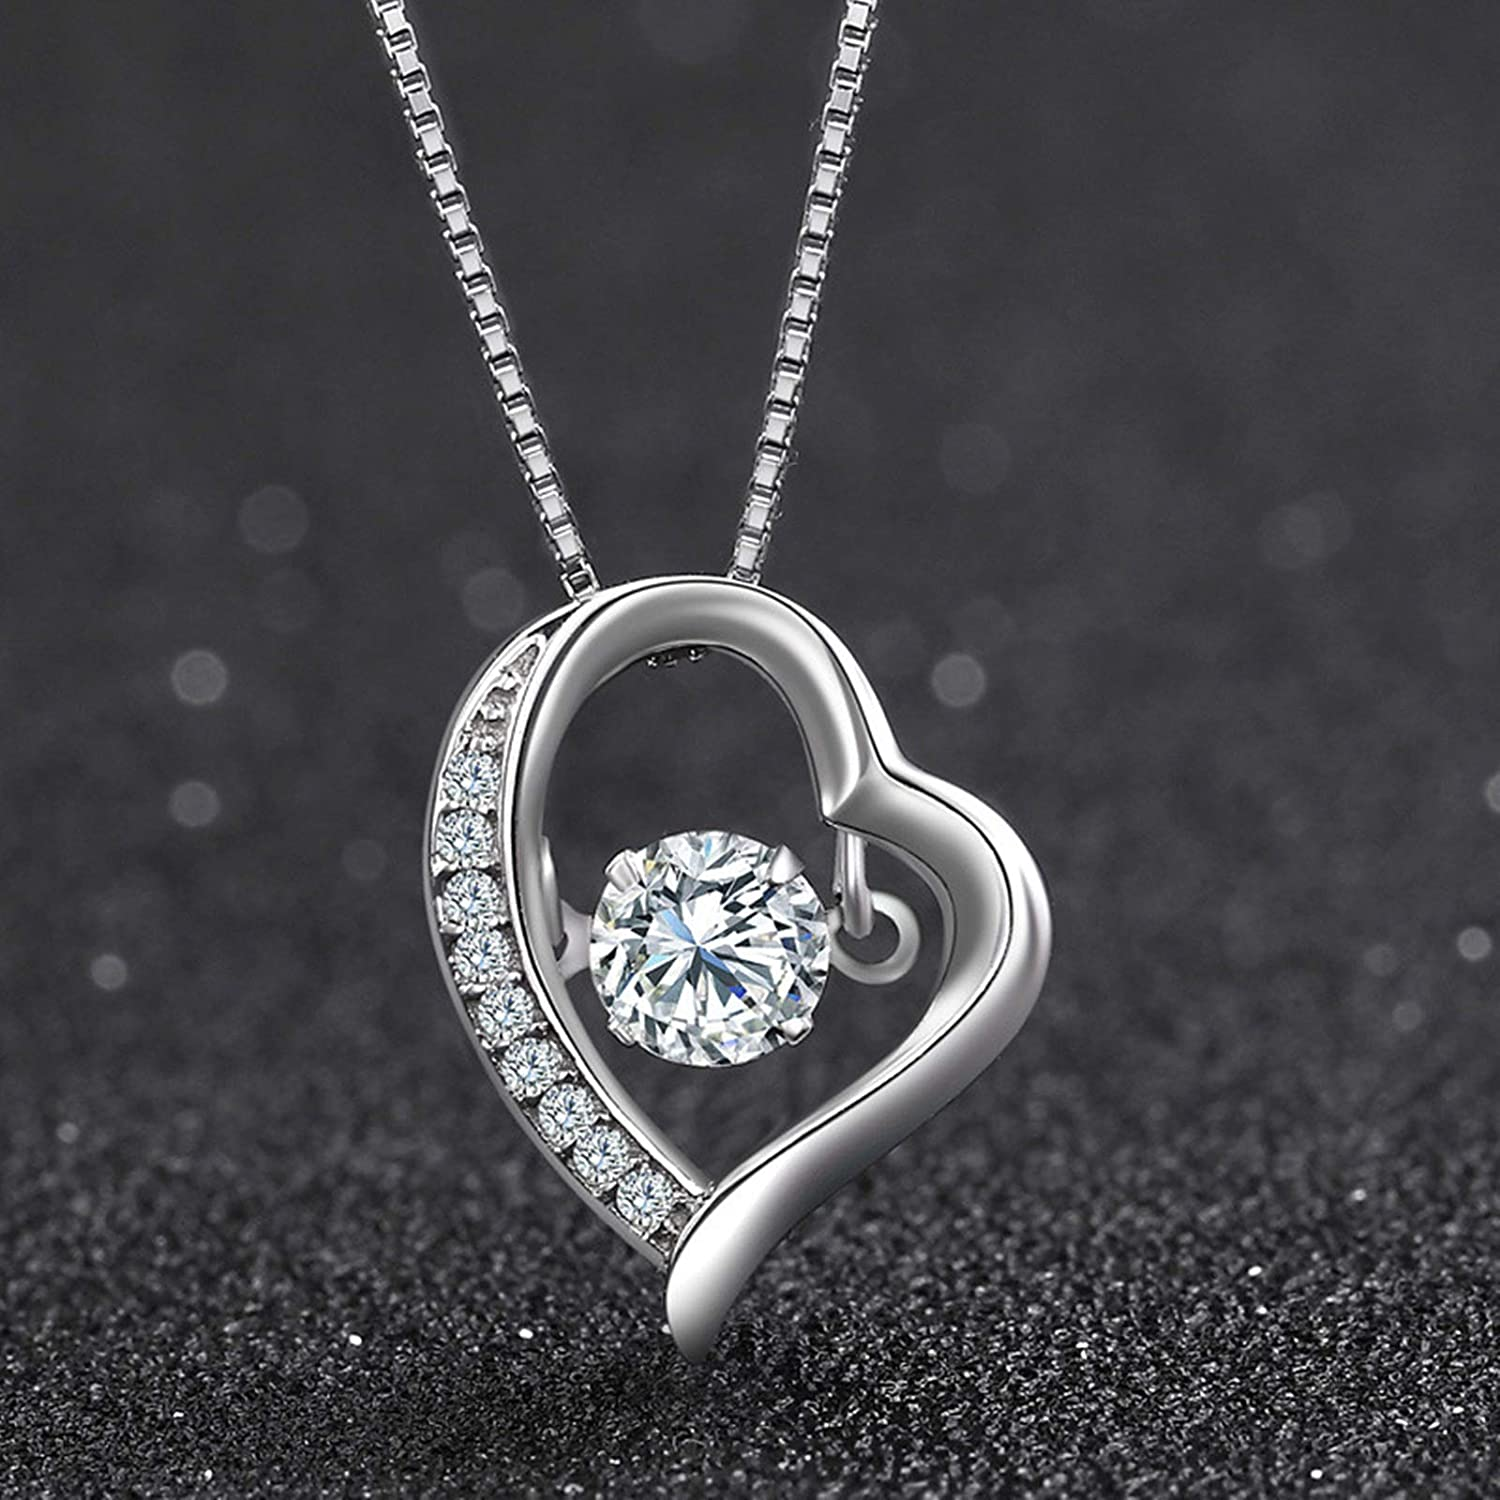 Daesar Silver Necklace for Women 925 Necklace with Pendant Round Heart Necklaces Personalized Cubic Zirconia Necklace Vintage Silver